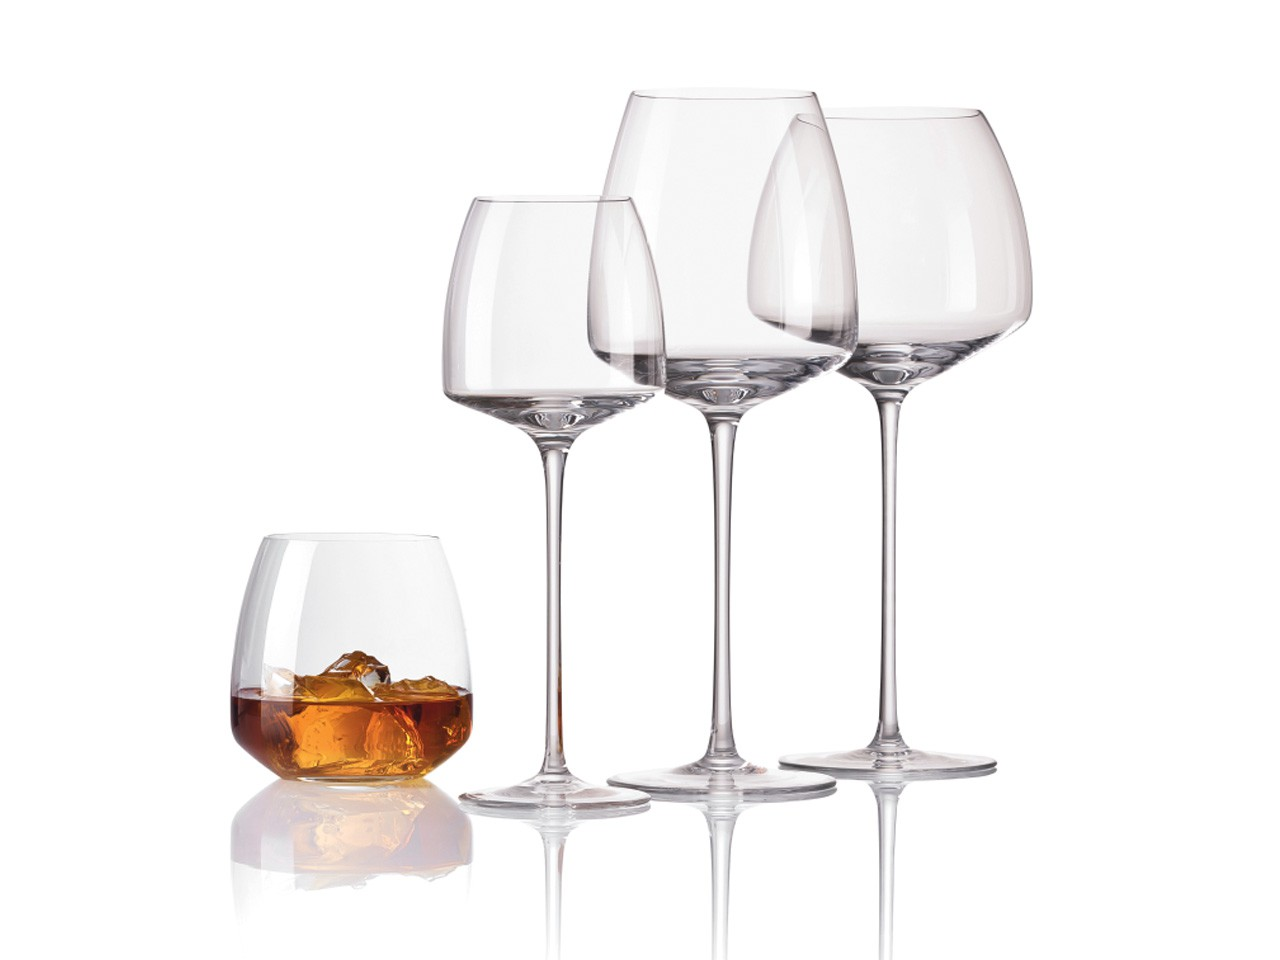 3 Rosenthal TAC 02 wine glasses and 1 TAC 02 whiskey glass on mirrored surface.